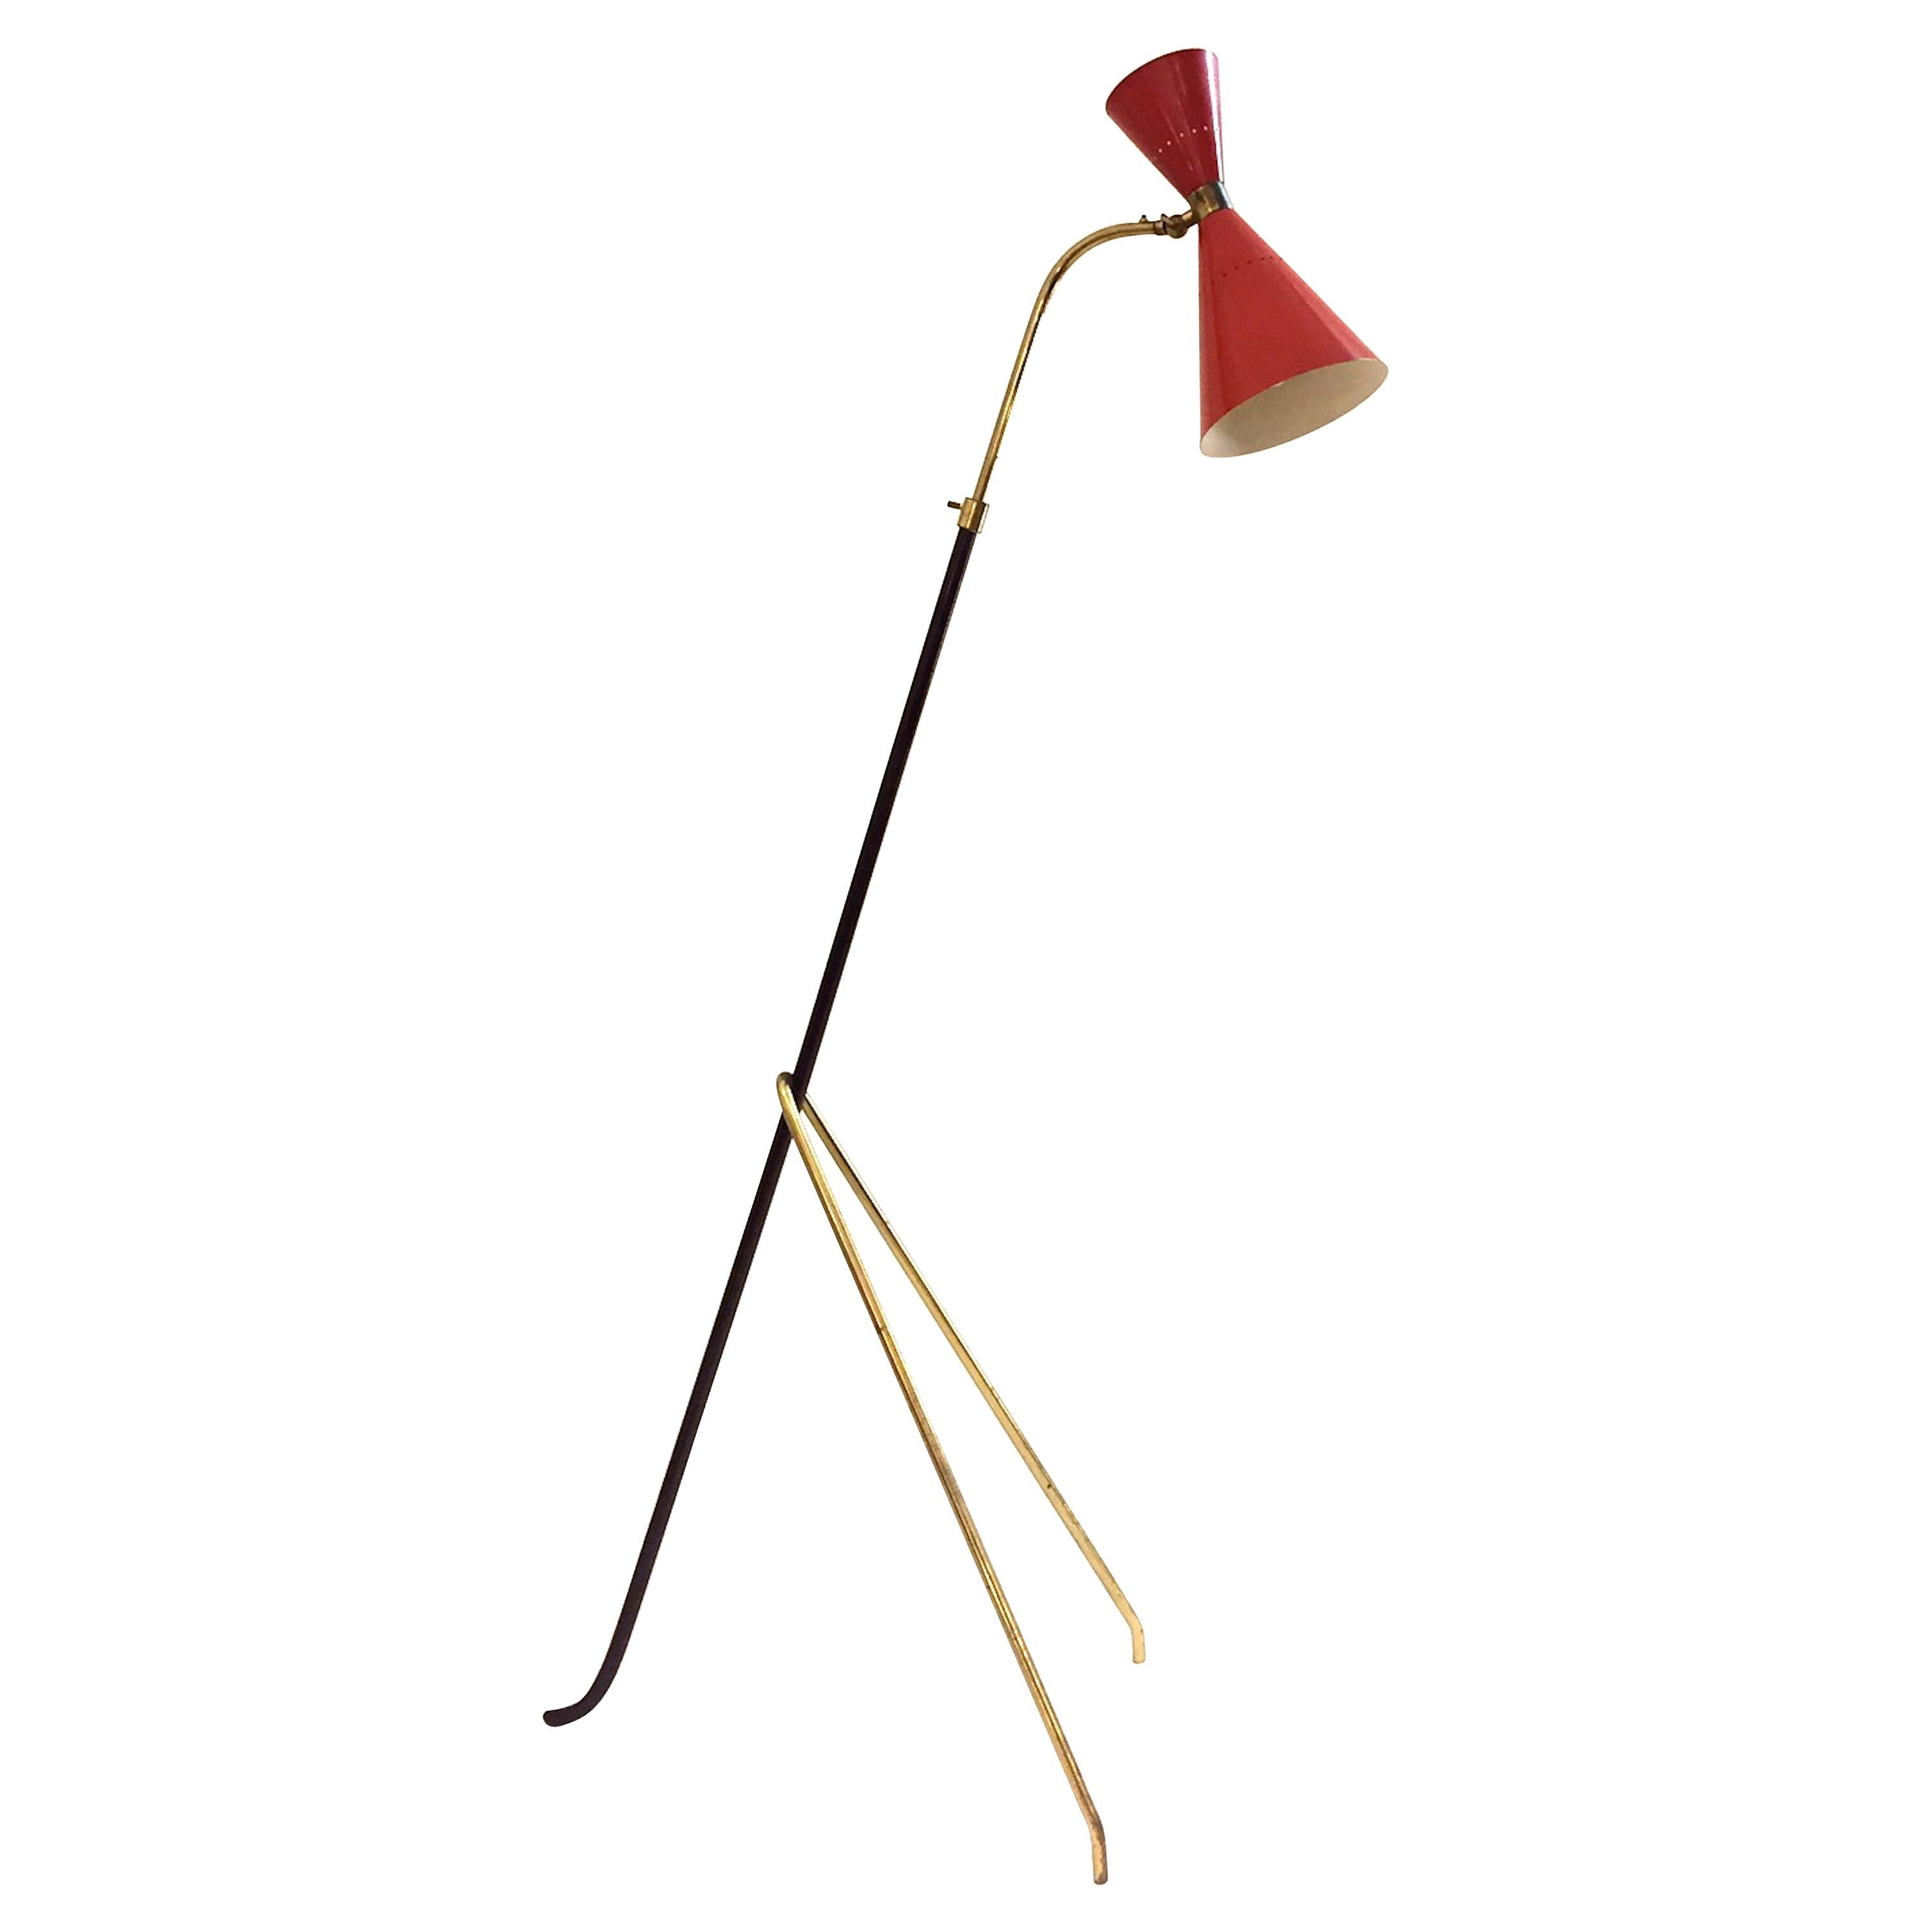 Midcentury Stilnovo Vintage Brass and Red Lacquered Adjustable Floor Lamp